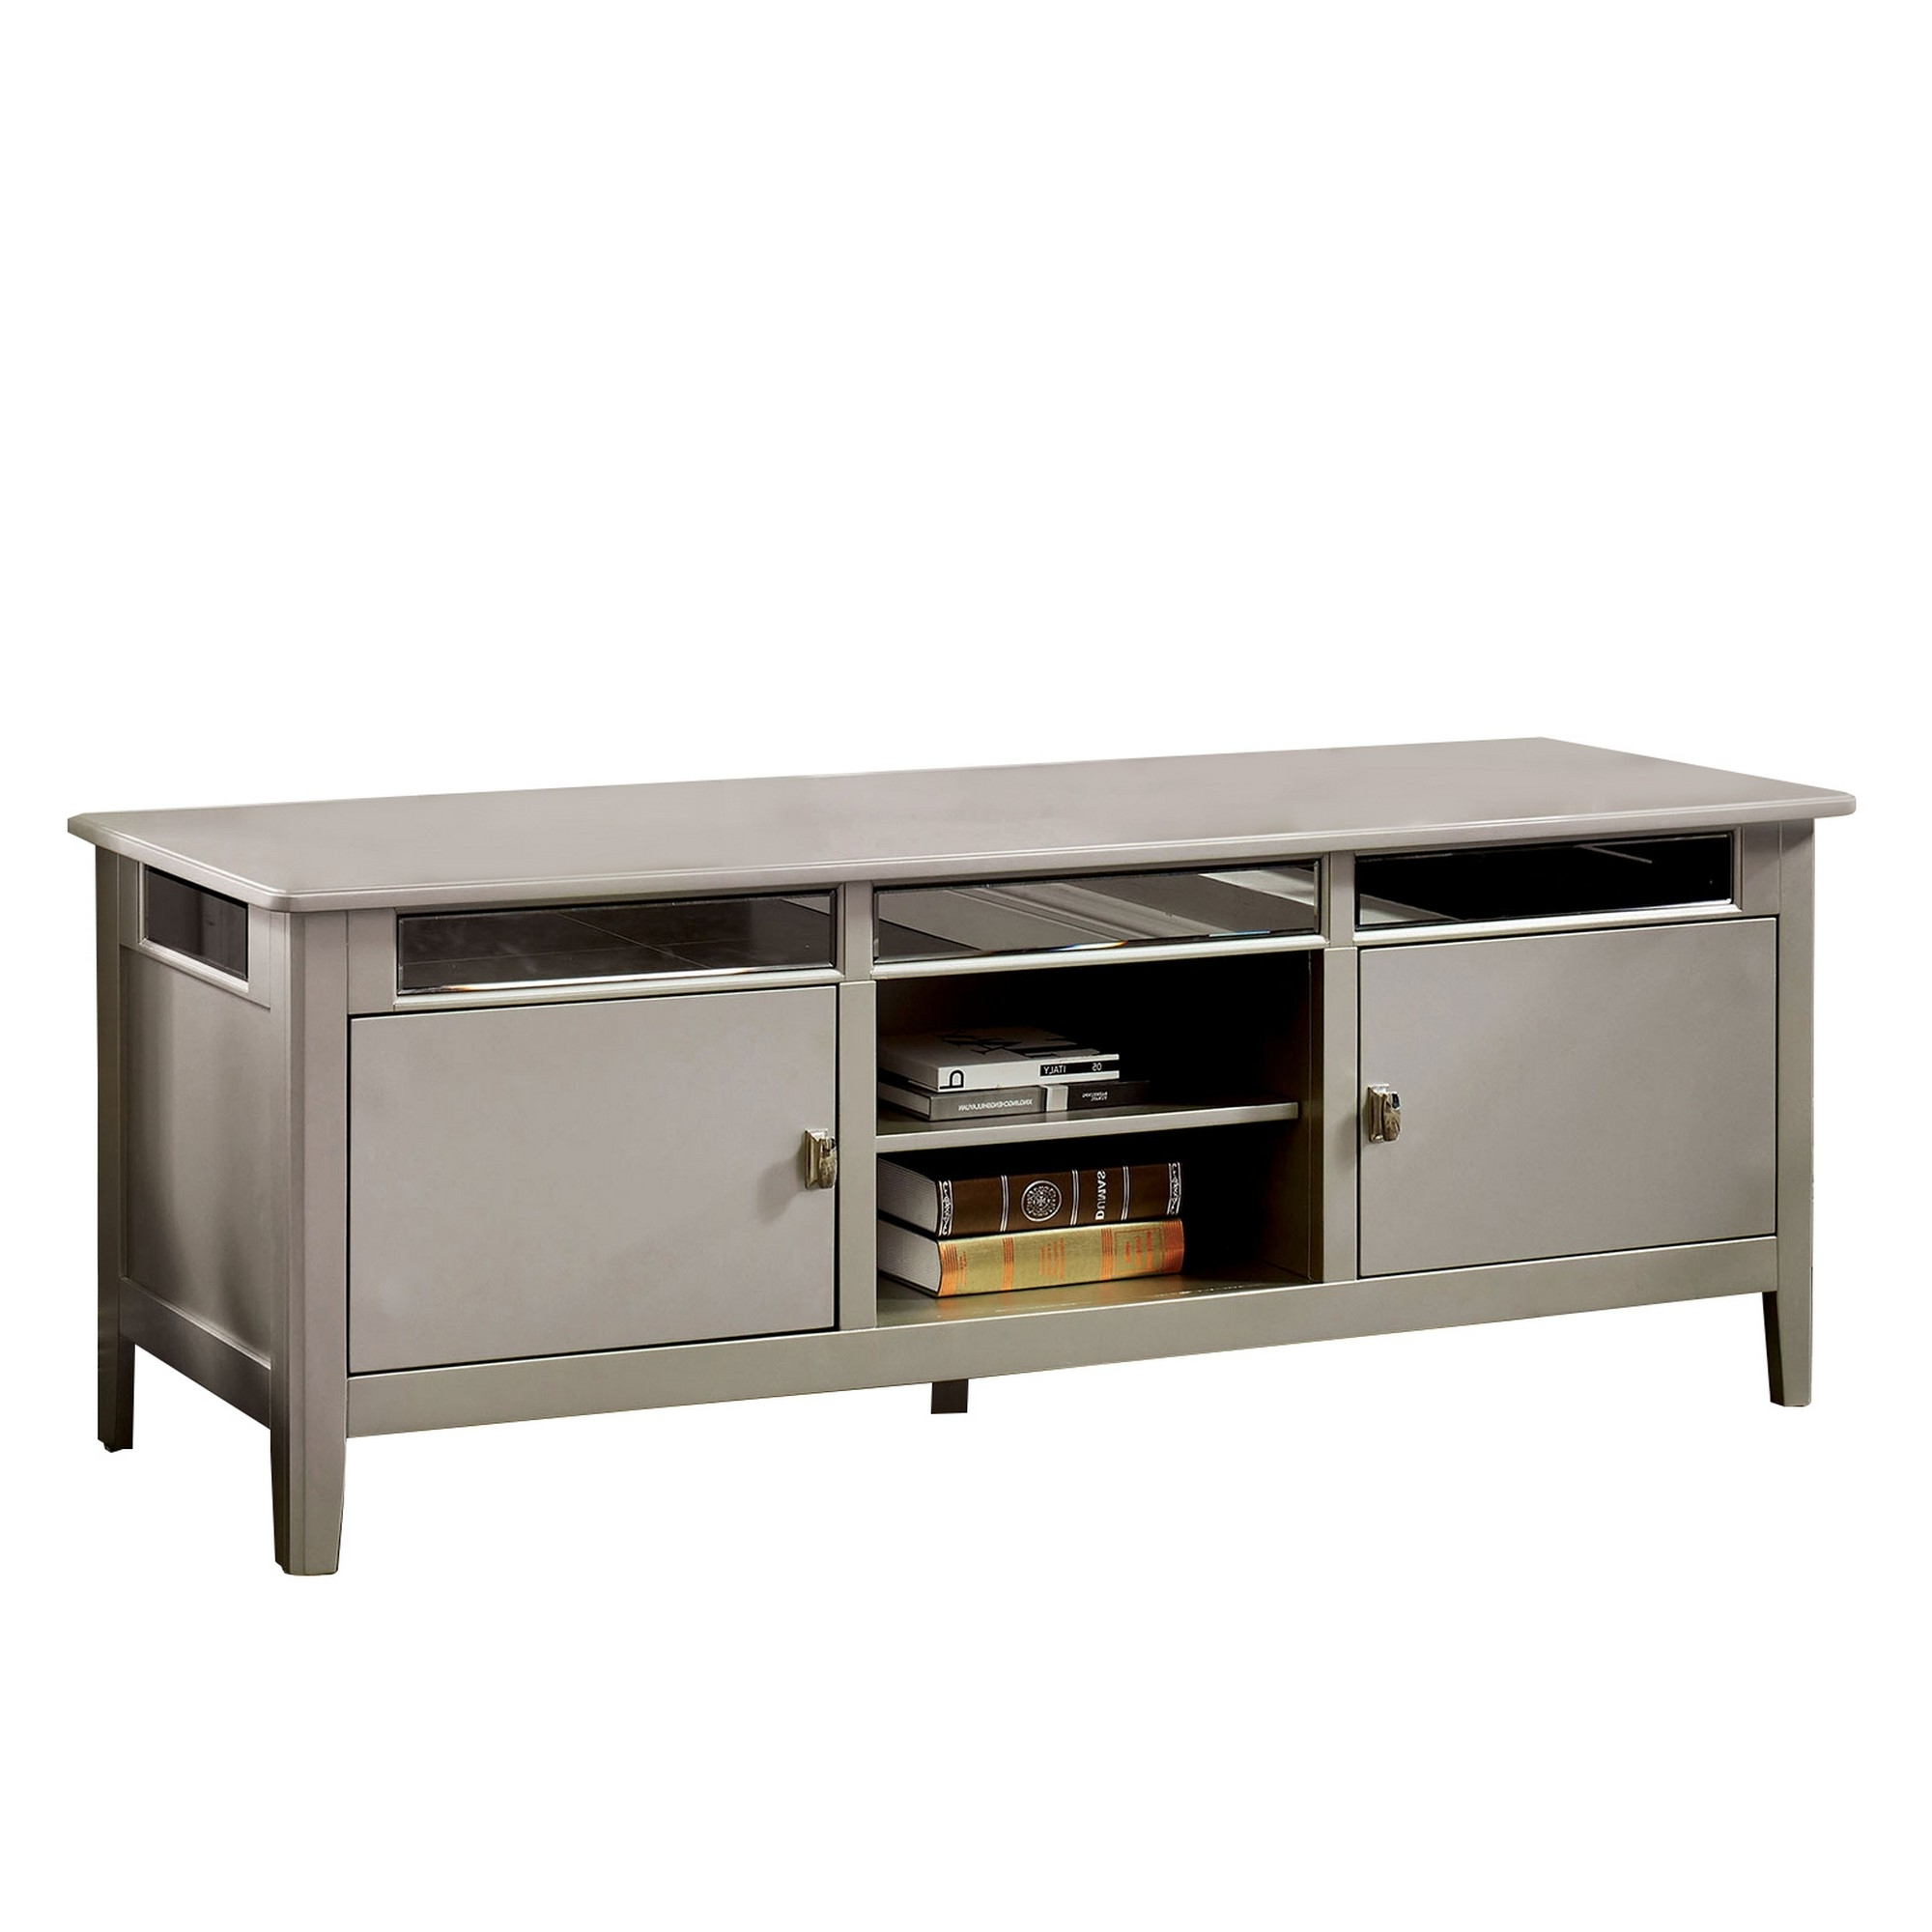 Mirror Paneled Wooden Tv Stand With 2 Cabinets And 2 Open In Fitzgerald Mirrored Tv Stands (View 14 of 20)